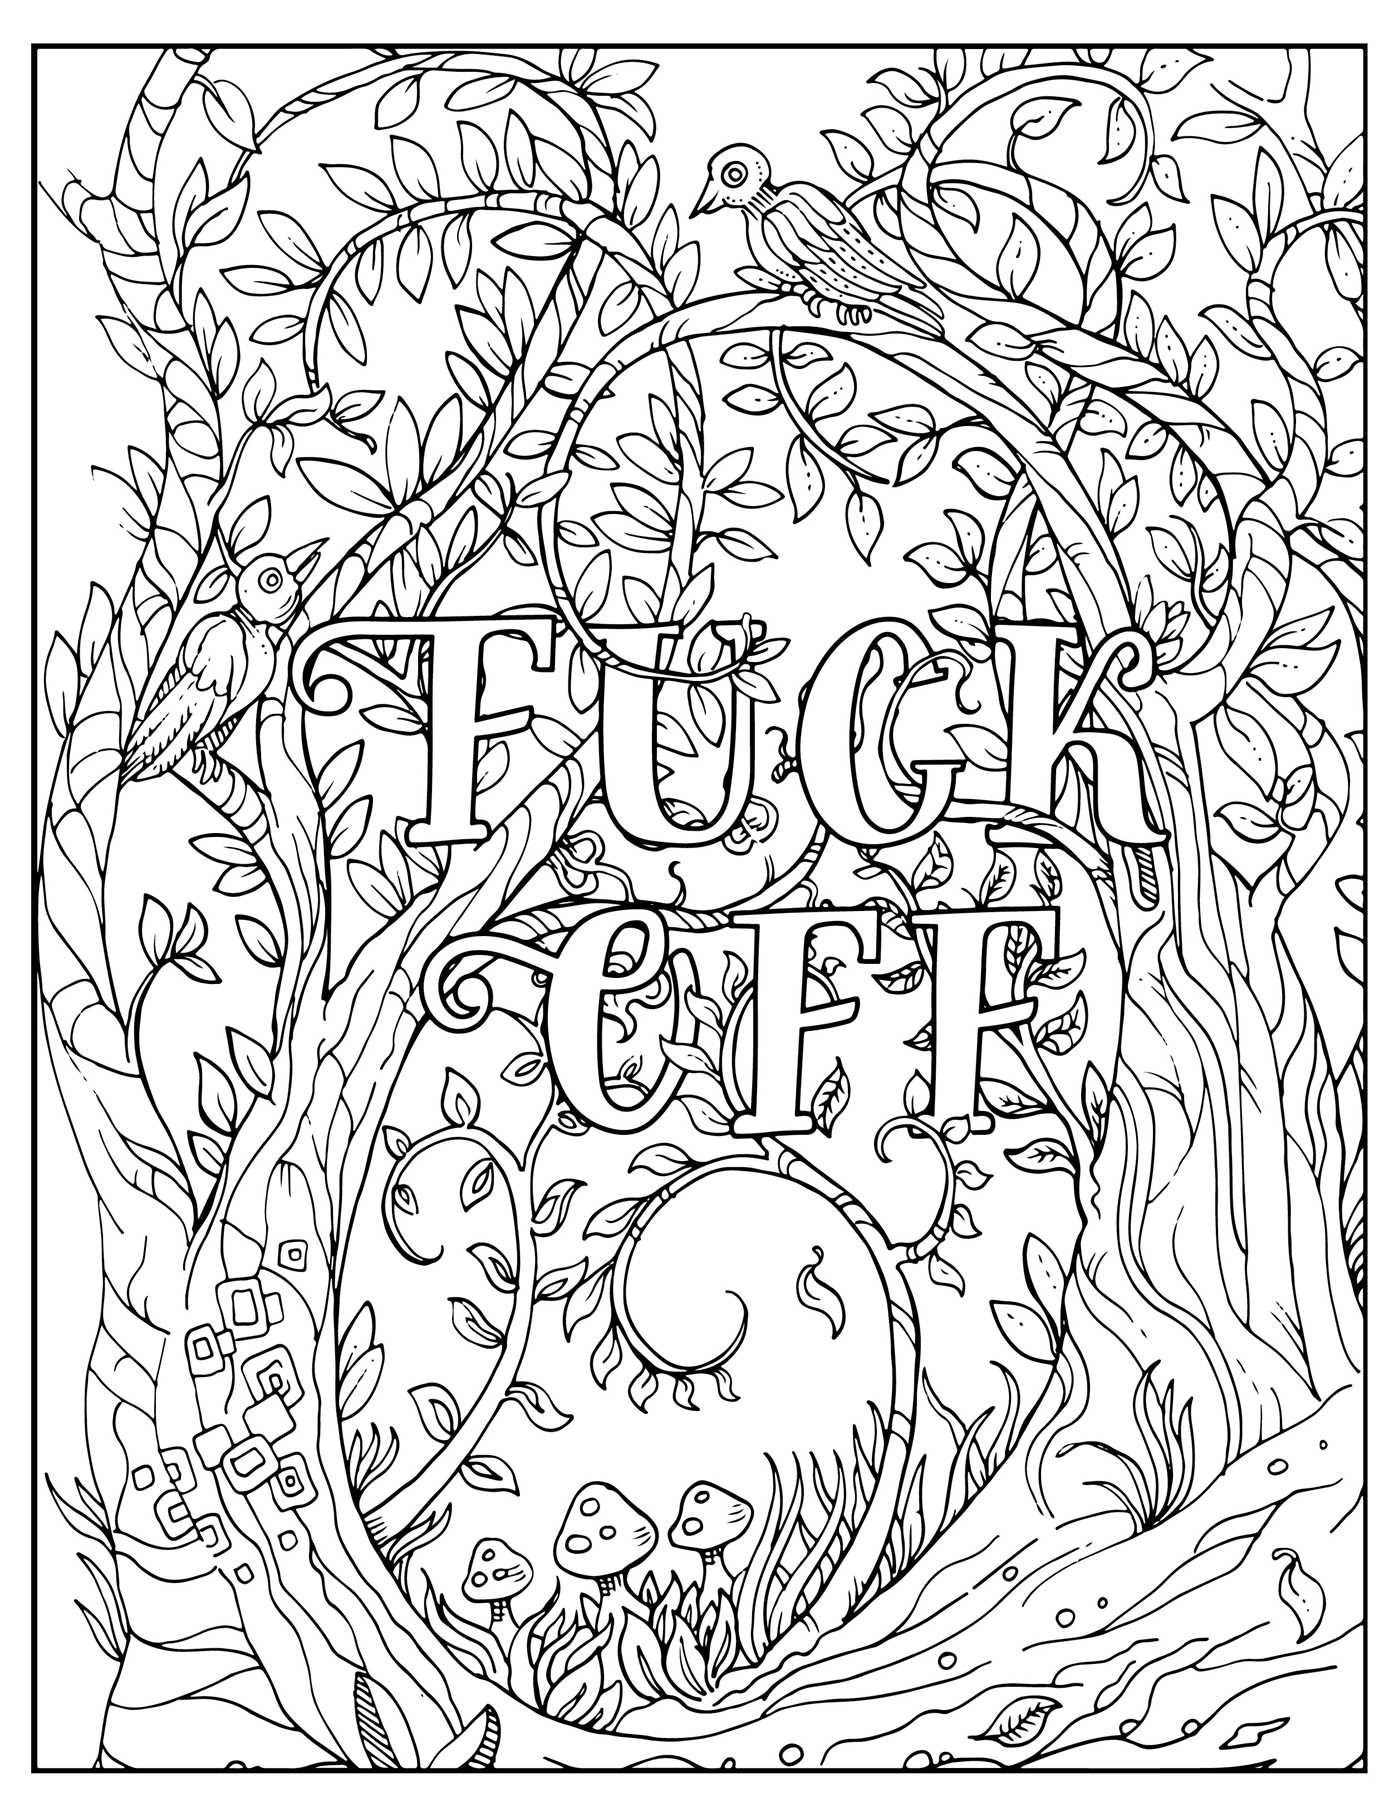 It is an image of Free Printable Cuss Word Coloring Pages with stress relief depression